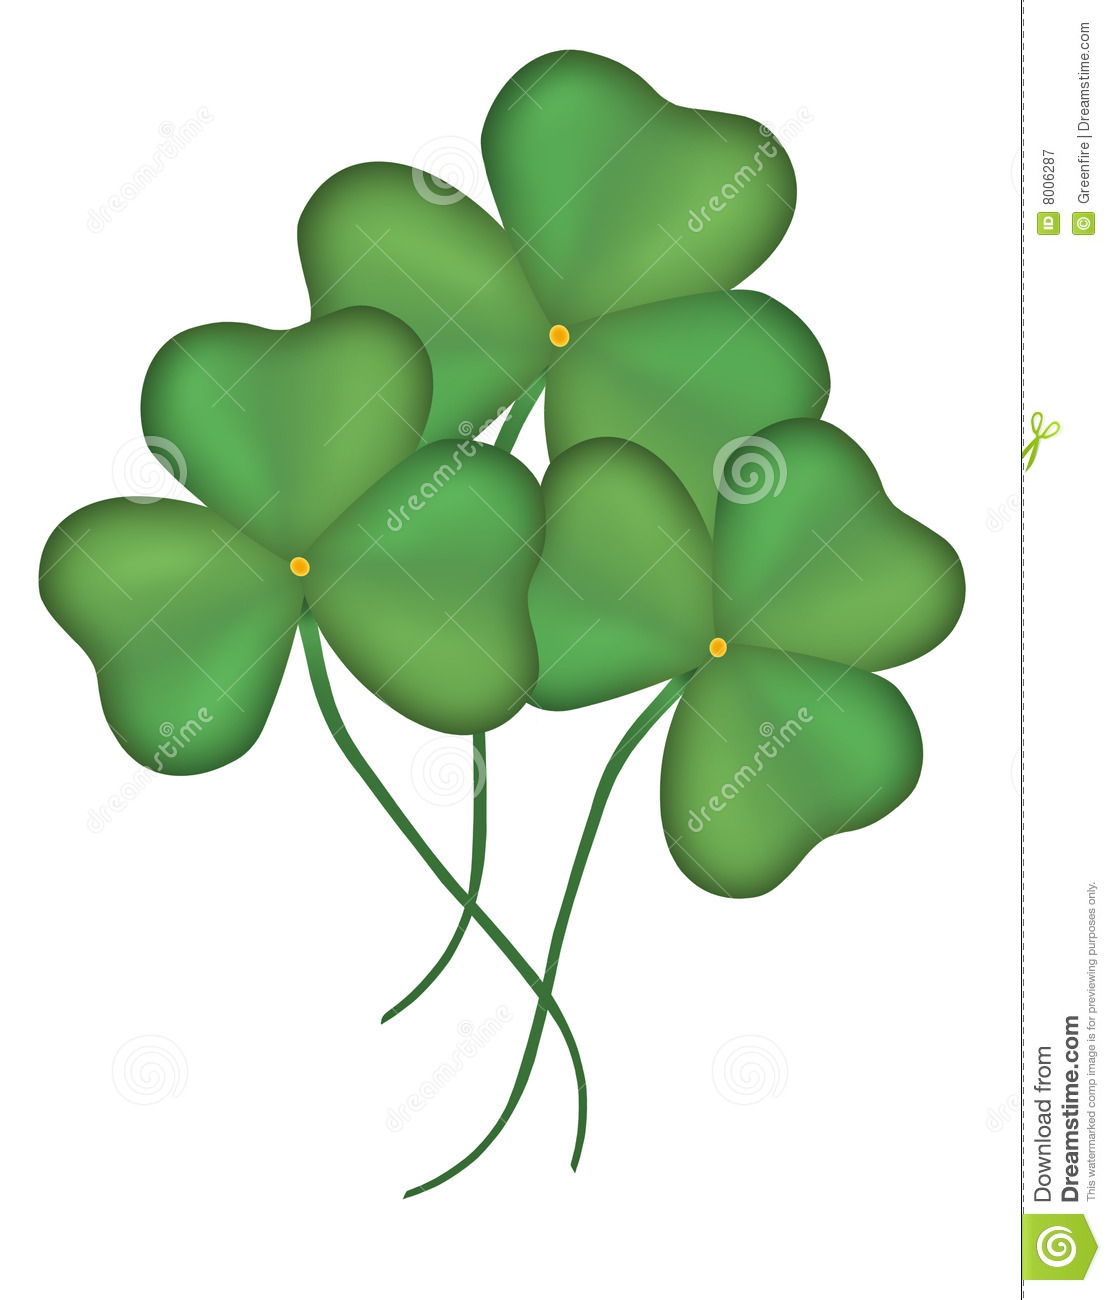 Shamrocks Royalty Free Stock Photography - Image: 8006287